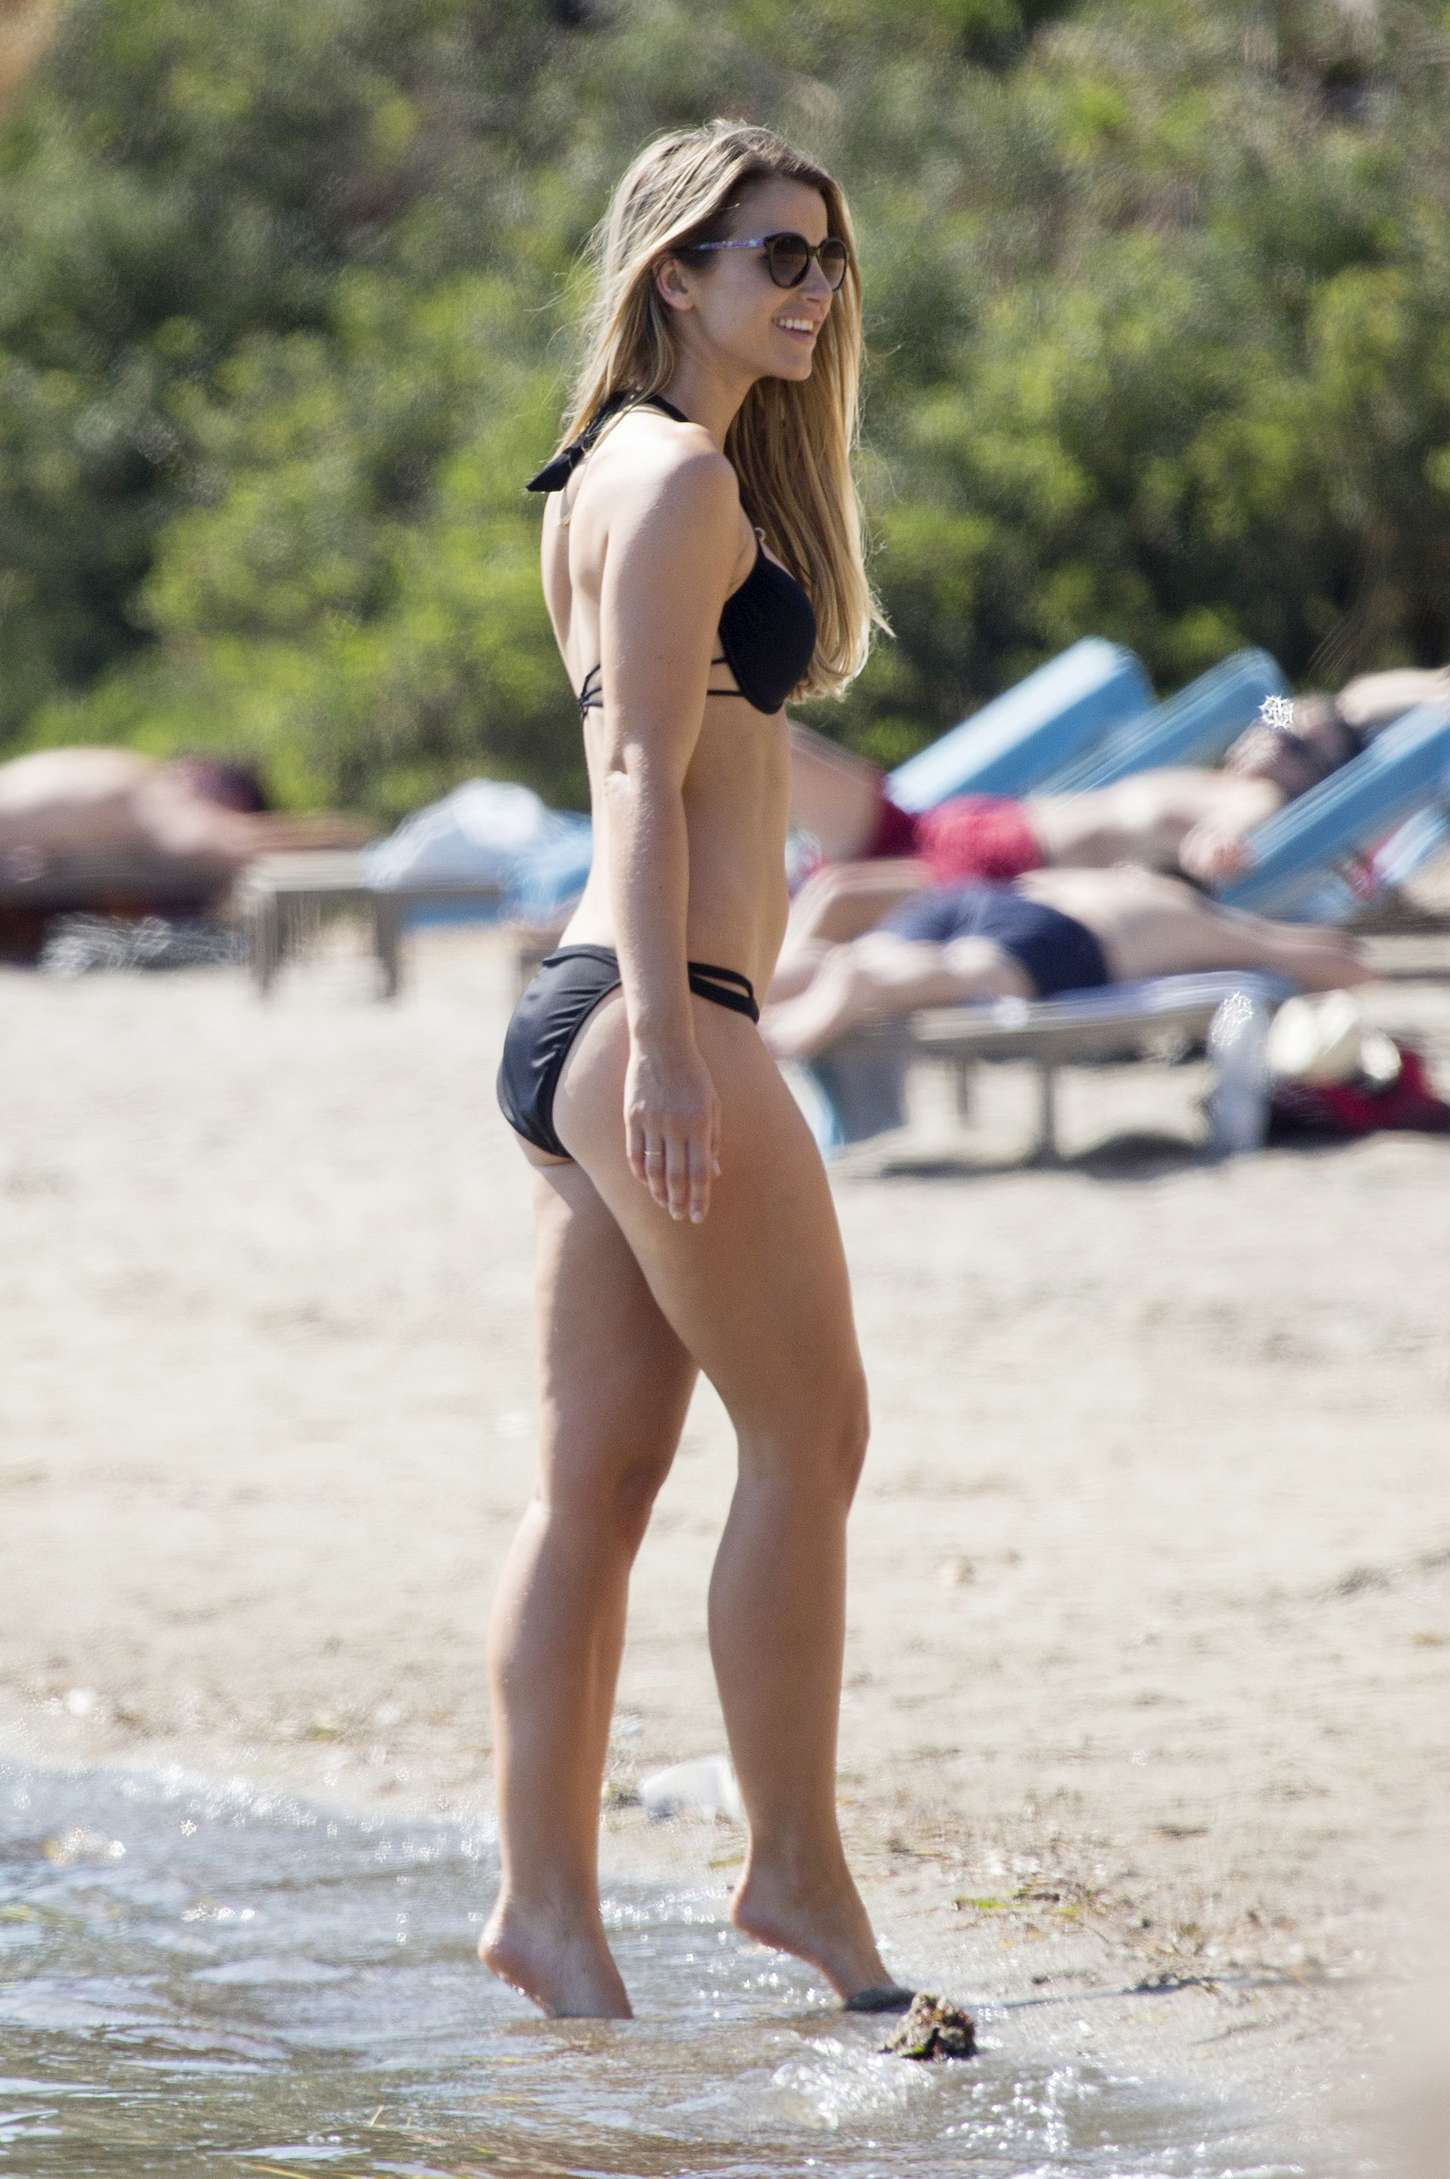 Vogue Williams Wearing Bikini on the beach in Ibiza